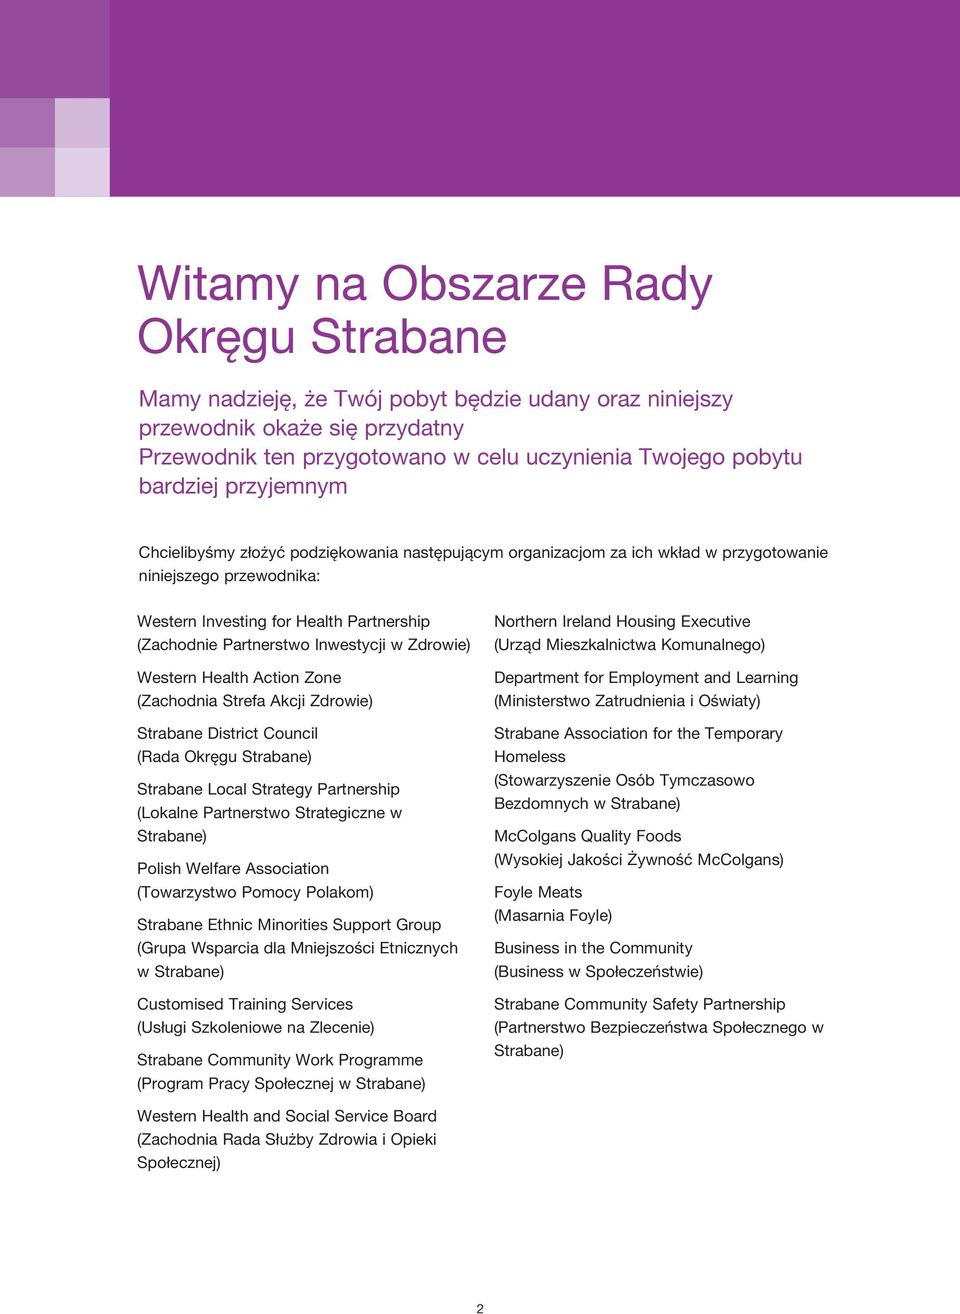 w Zdrowie) Western Health Action Zone (Zachodnia Strefa Akcji Zdrowie) Strabane District Council (Rada Okręgu Strabane) Strabane Local Strategy Partnership (Lokalne Partnerstwo Strategiczne w